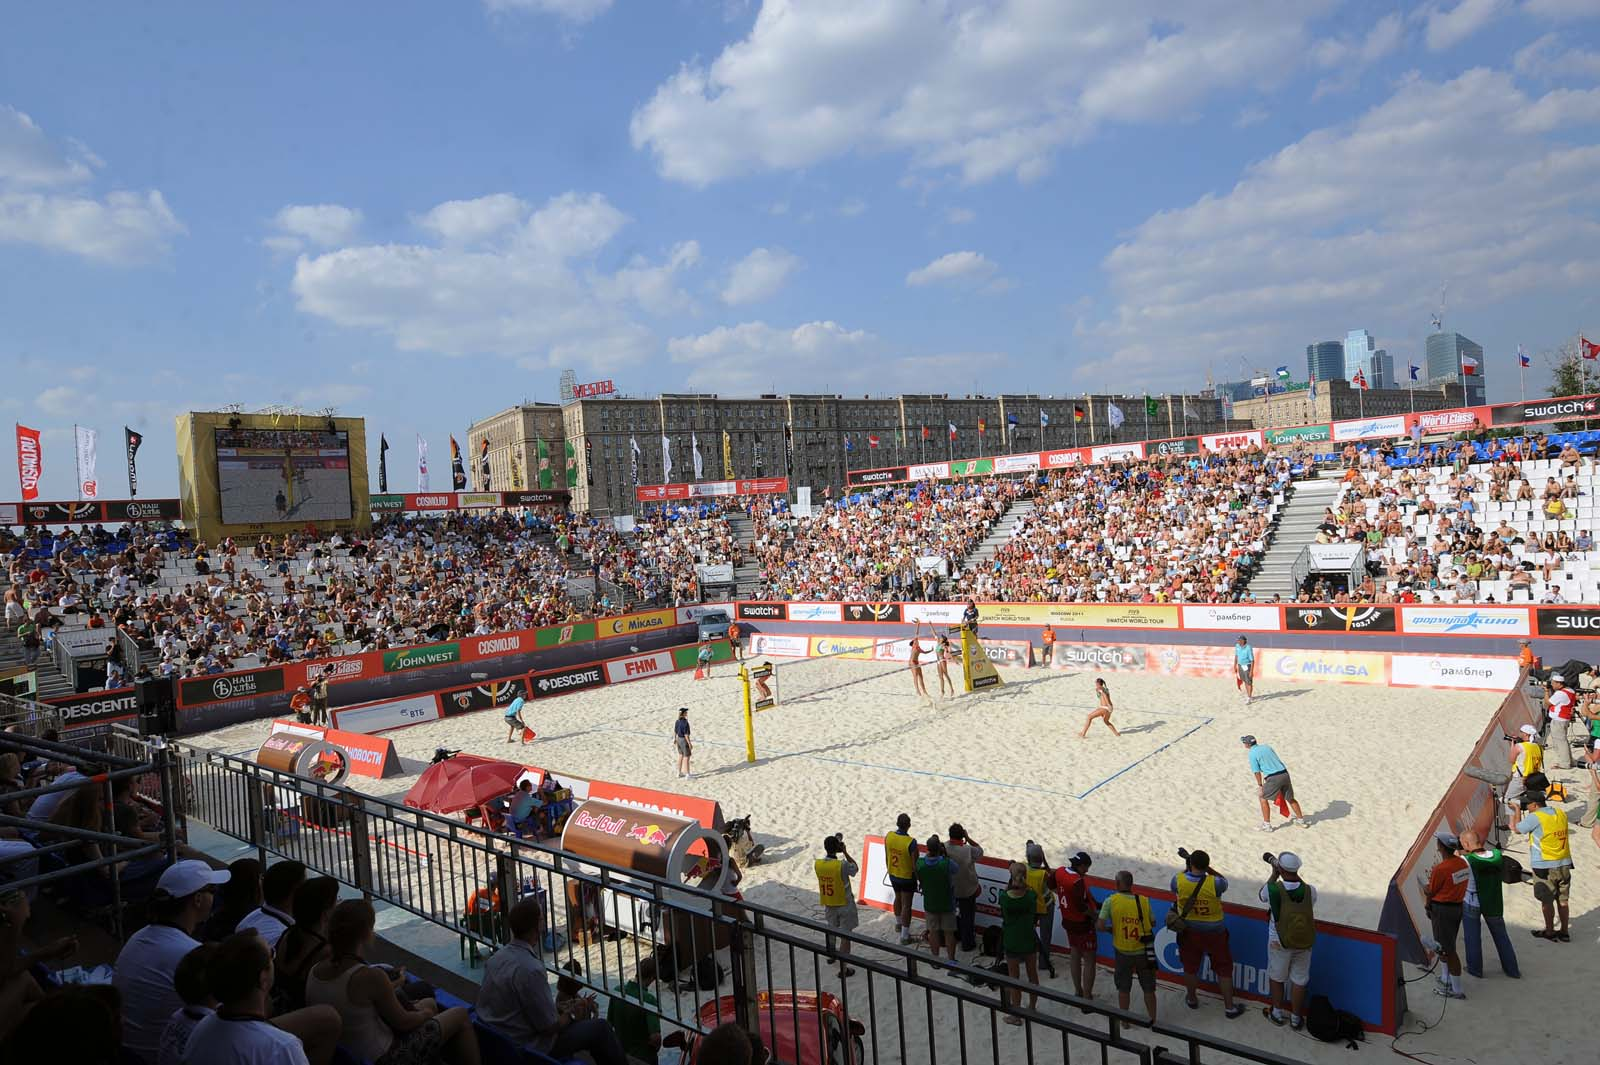 FIVB Kish Island Open beach volleyball live stream video online free